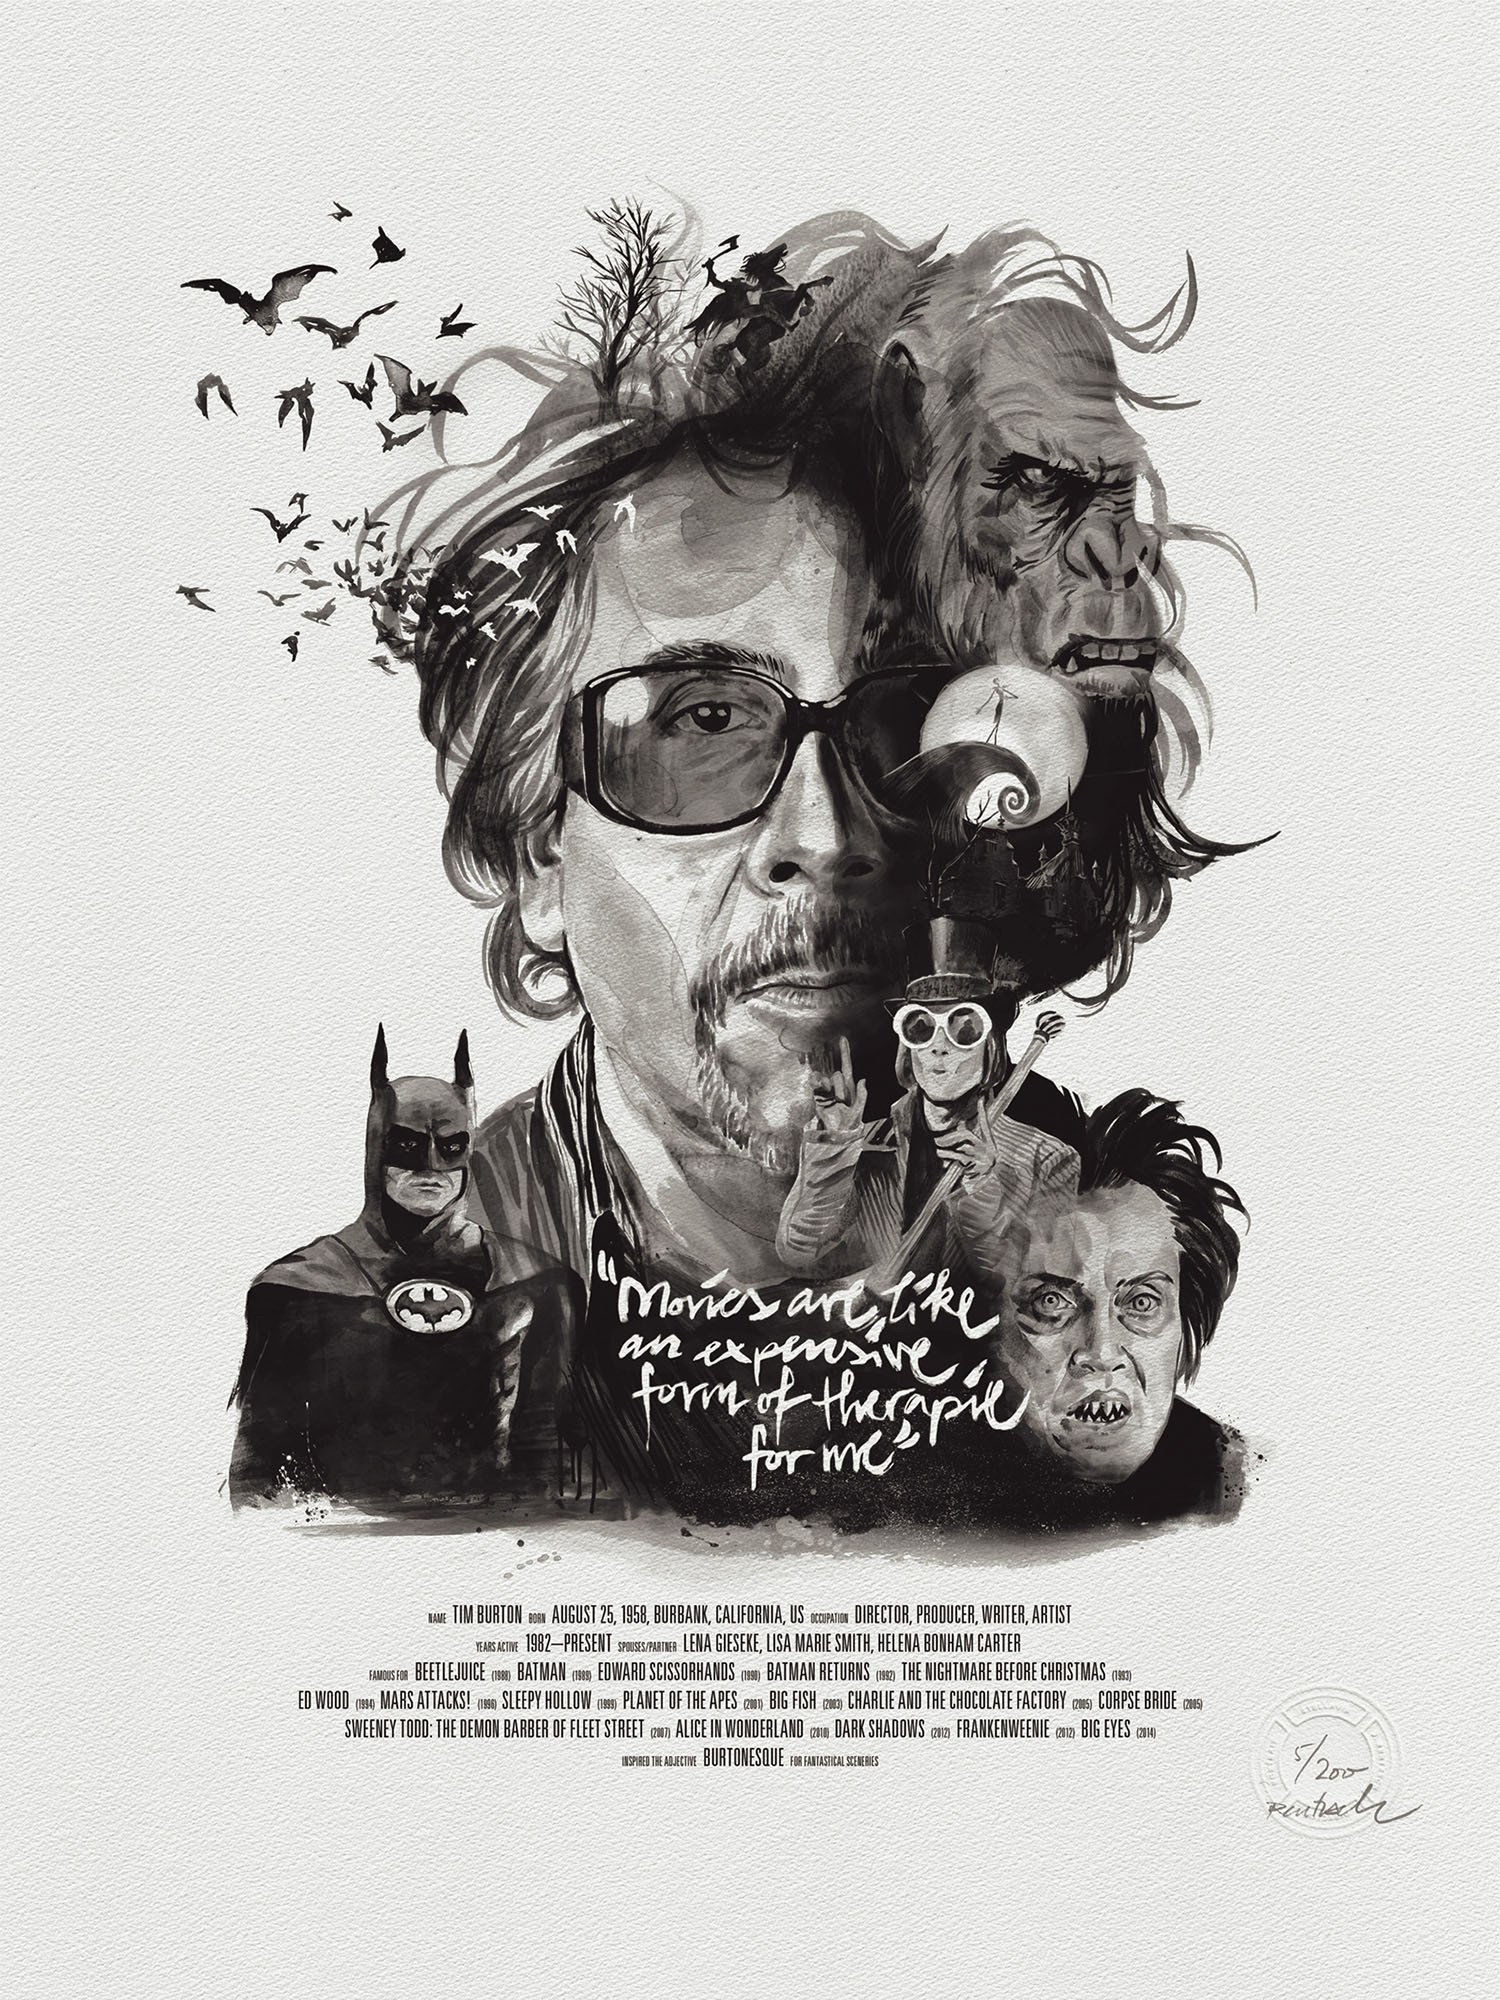 stellavie-rentzsch-movie-director-portrait-prints-tim-burton-flat_2048x2048